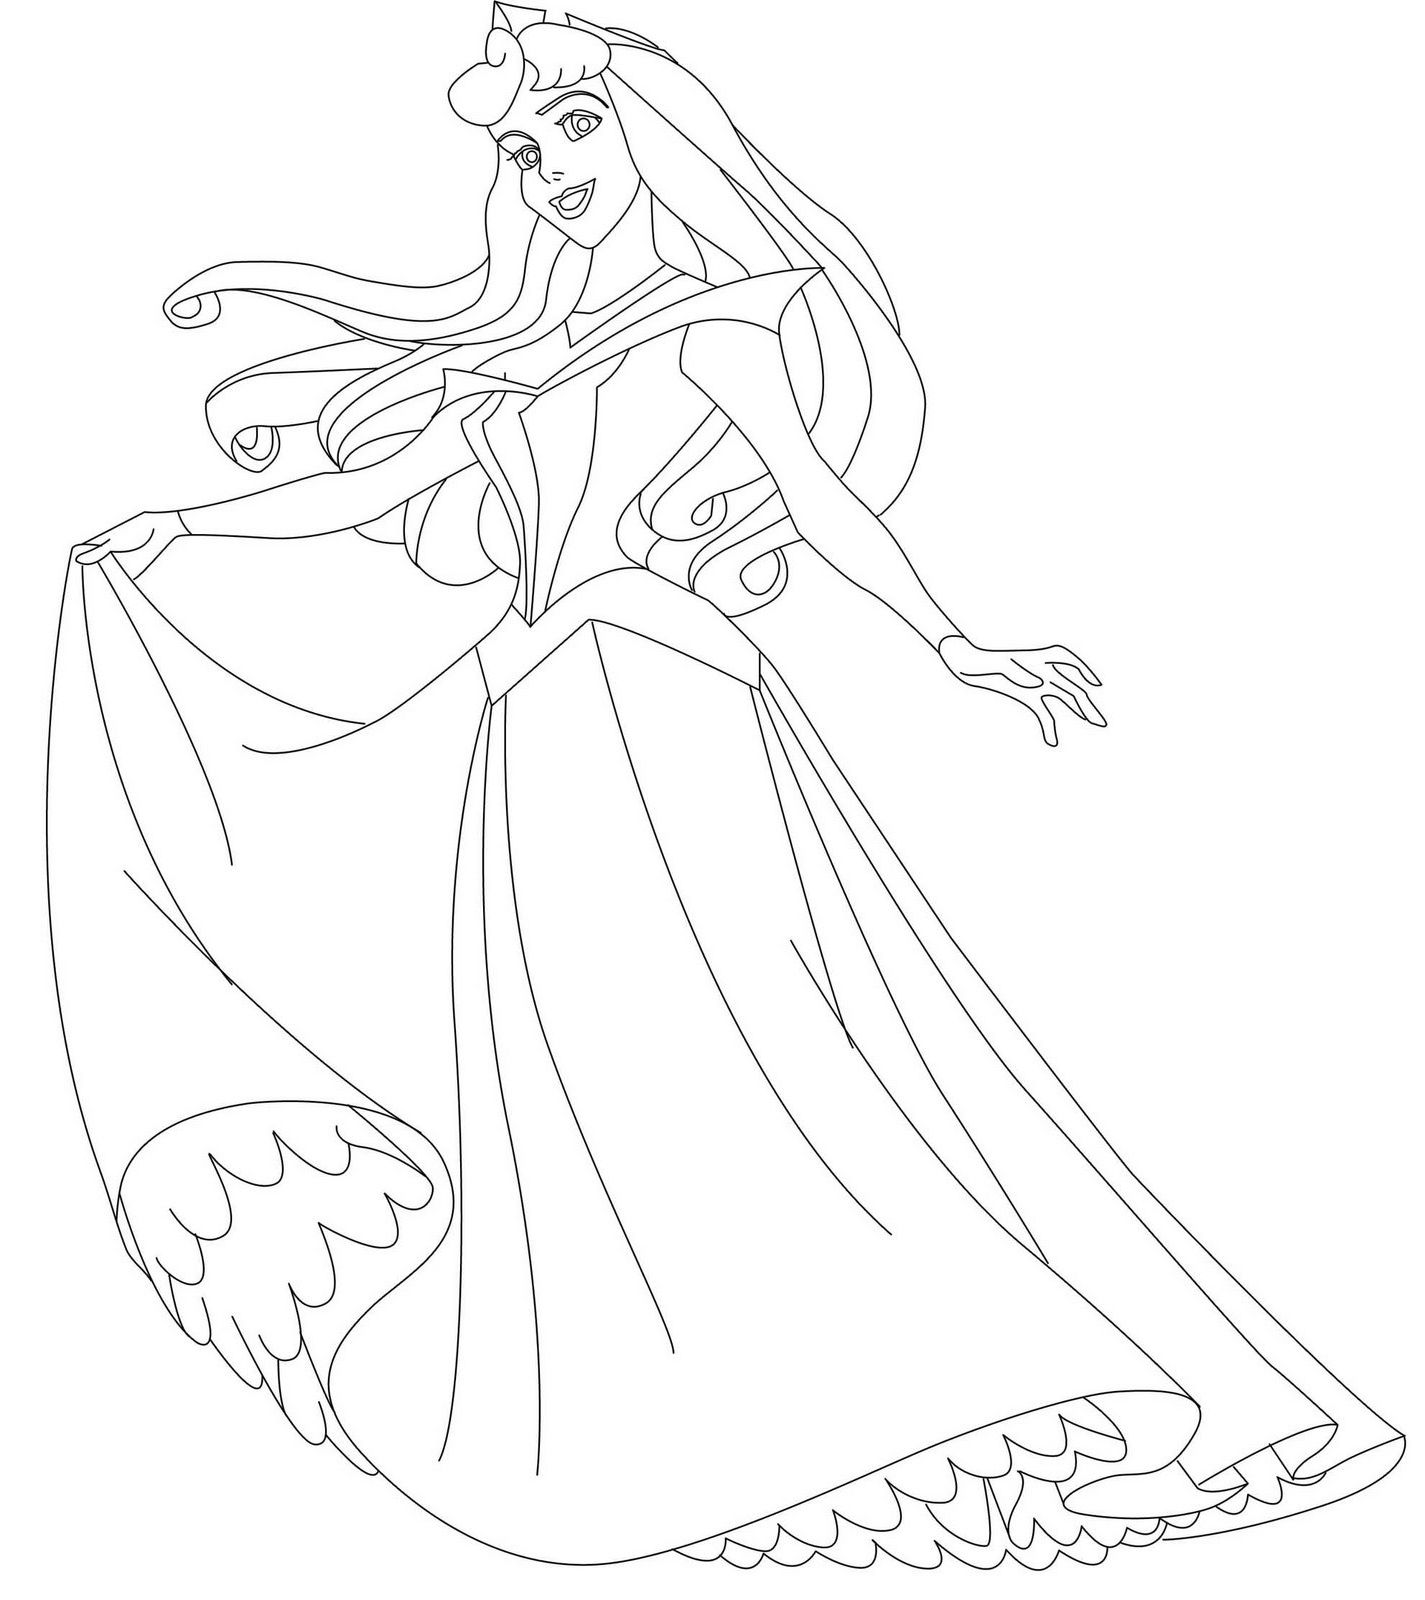 Sleeping Beauty Coloring Pages Princess Make For A Great Children Activity